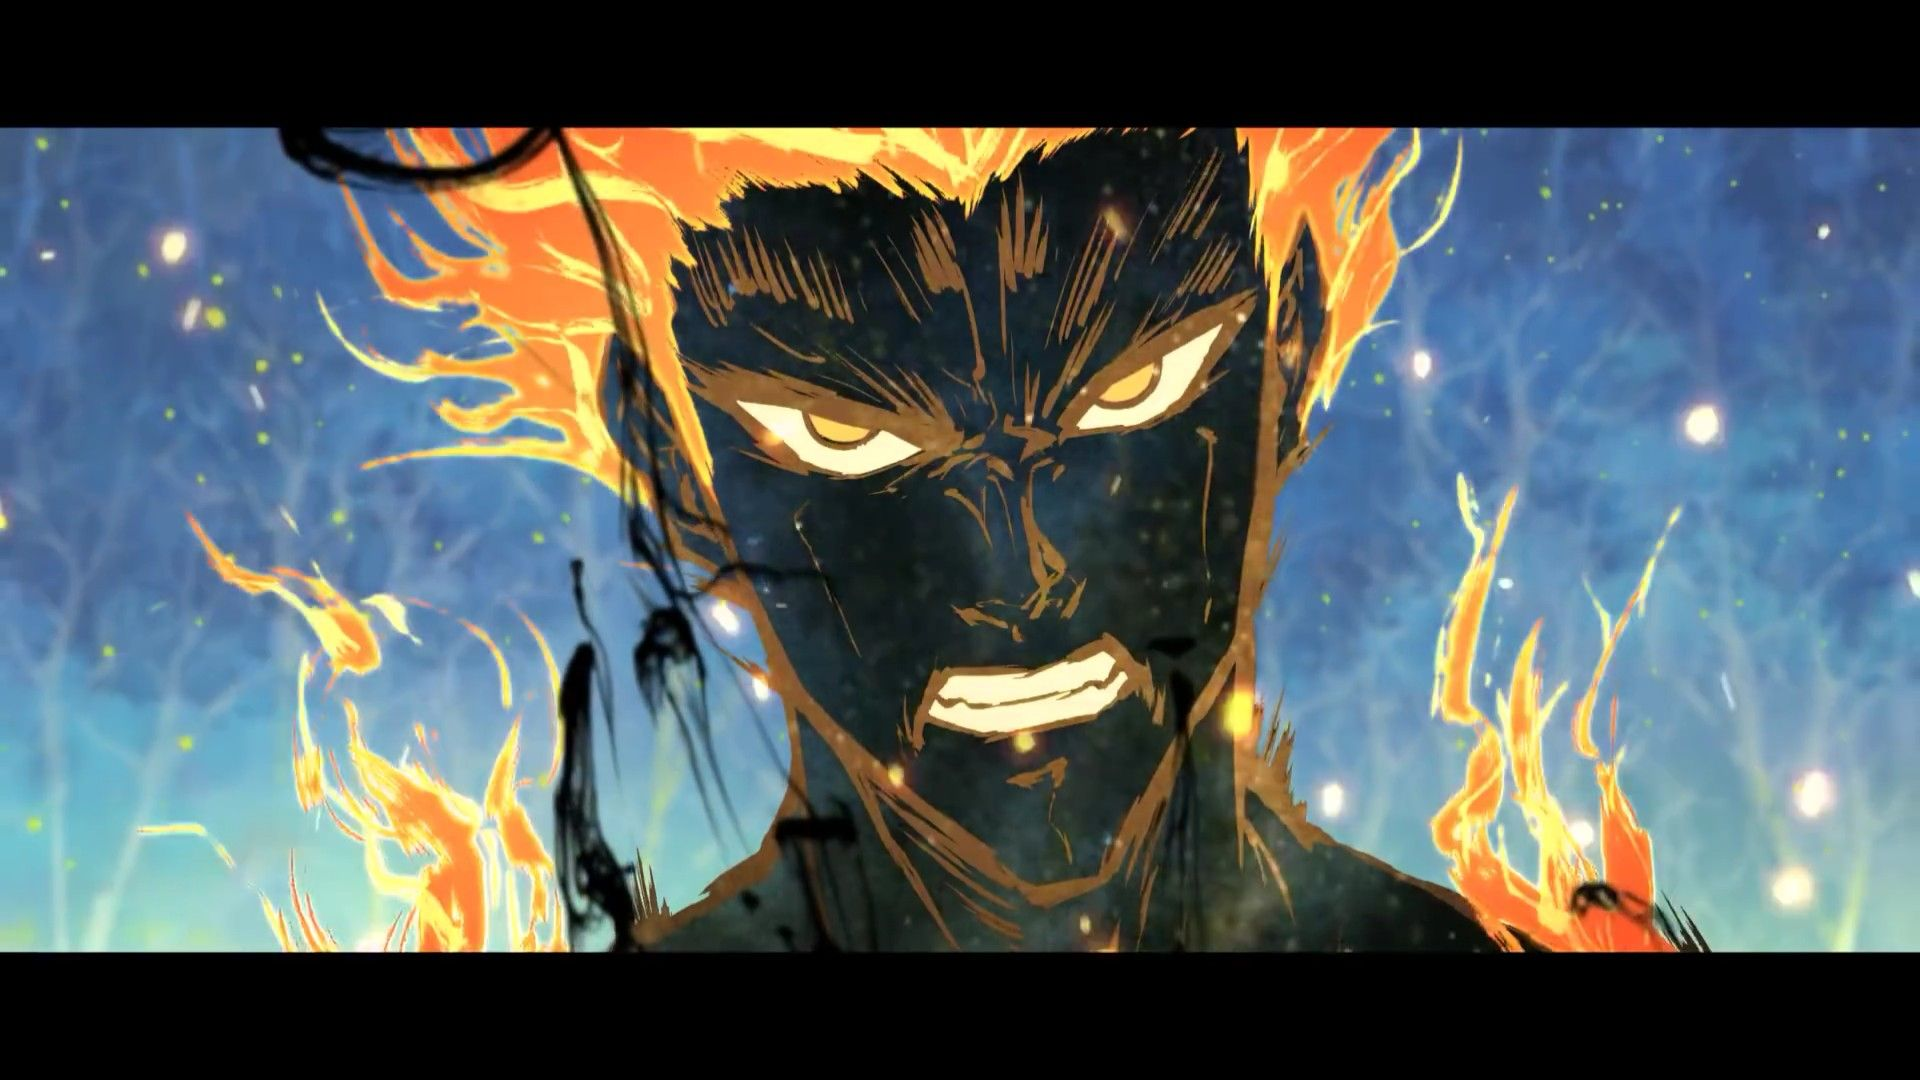 Chinese anime fog hill of five elements anime artistas